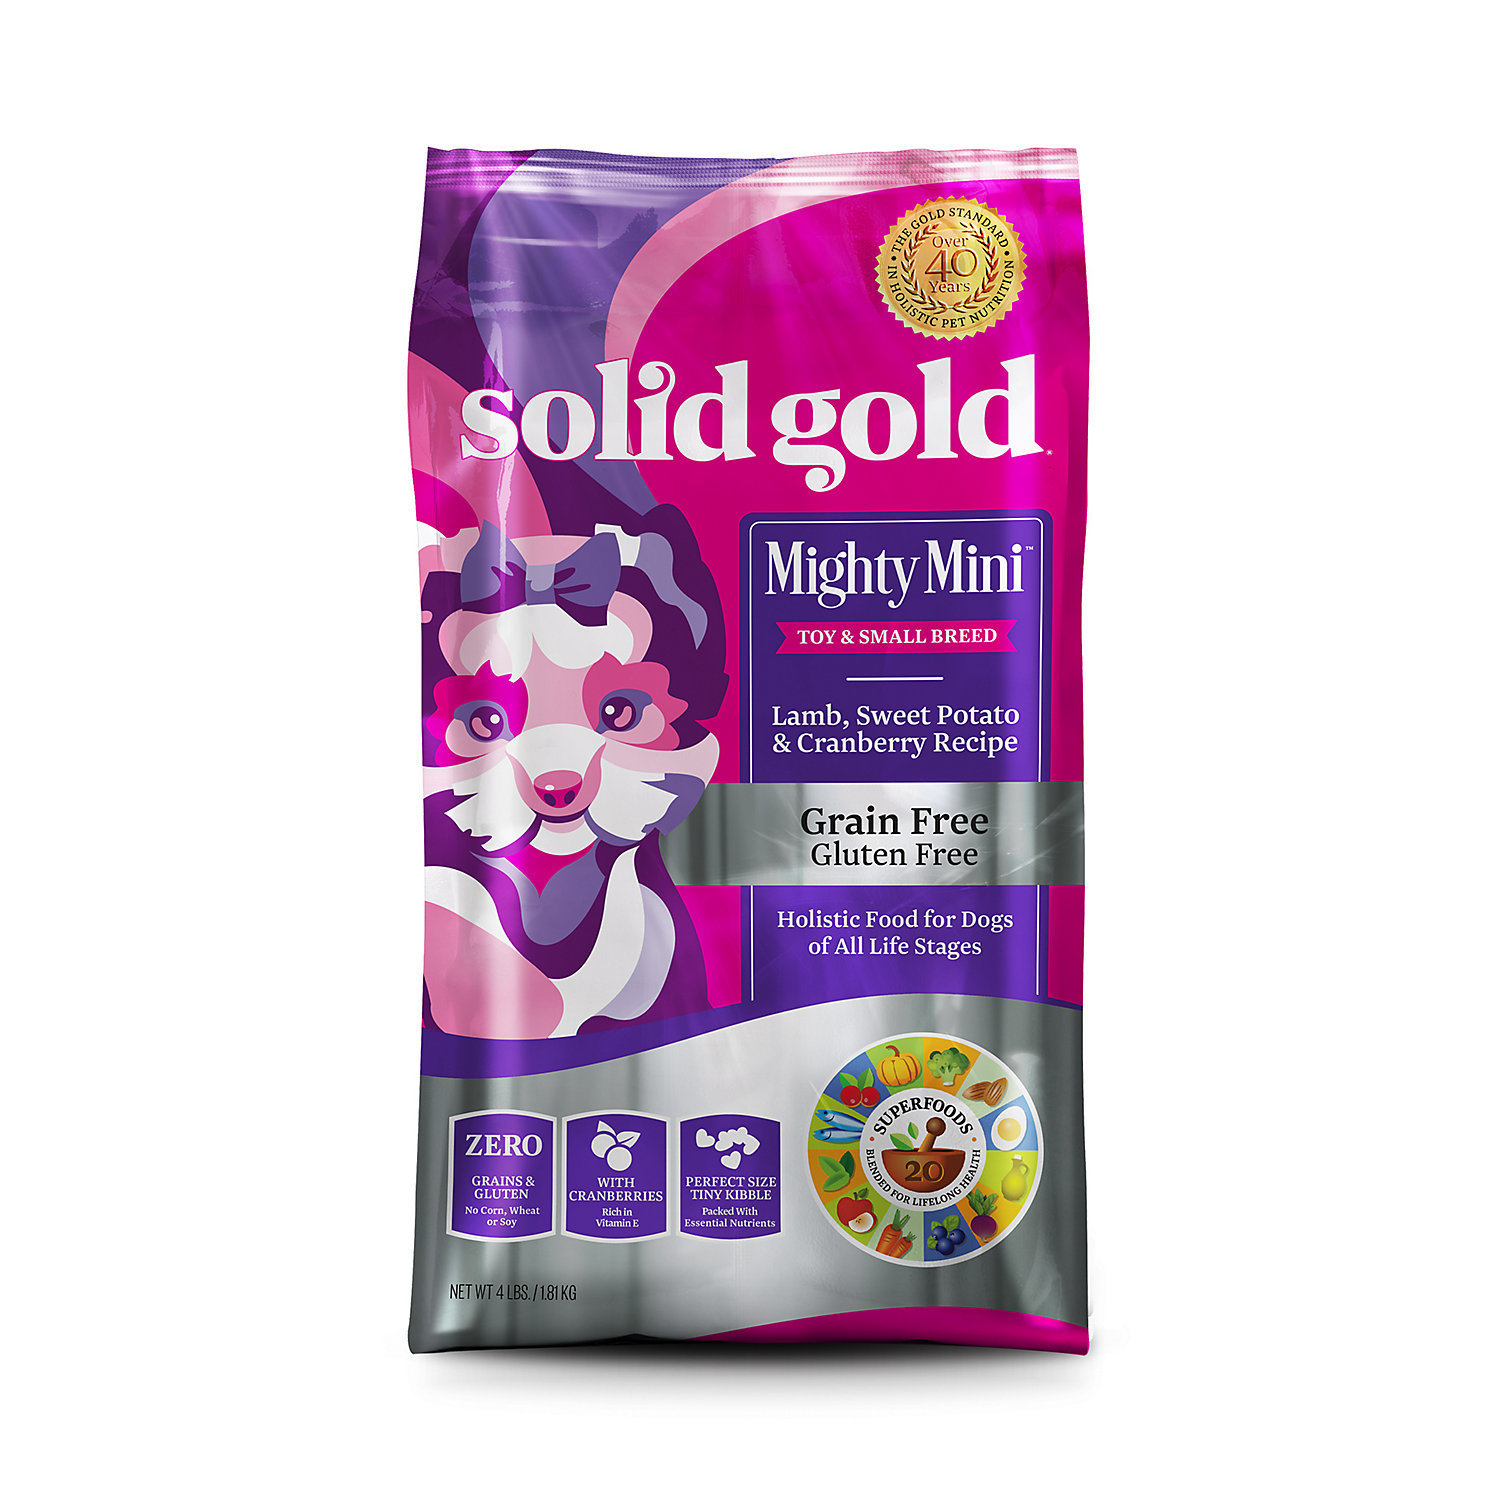 Solid Gold Mighty Mini Lamb, Sweet Potato & Cranberry Recipe Grain Free Dry Dog 4 lbs. (12/18) (A.M3)